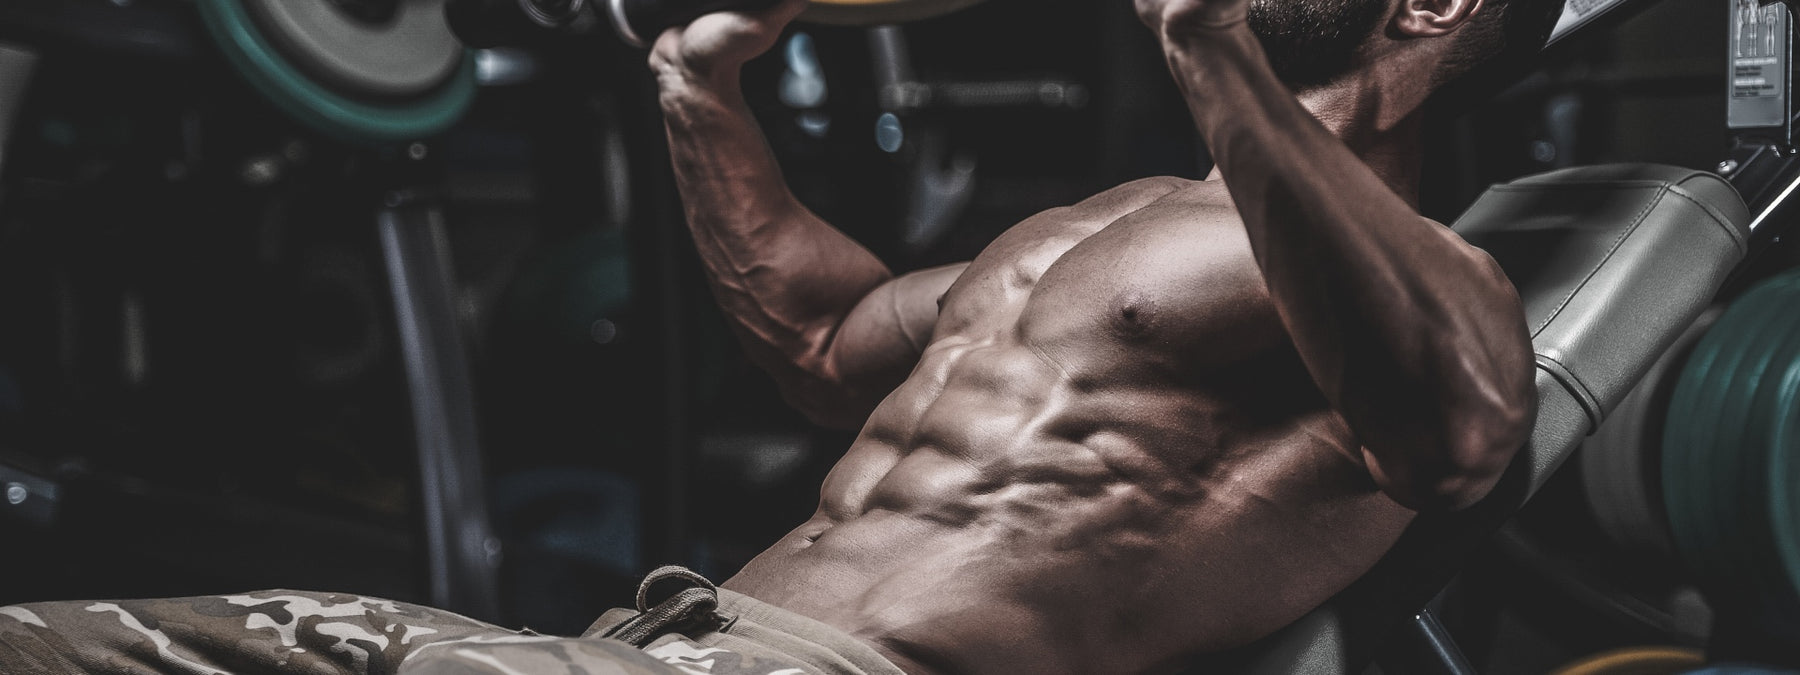 10 Hardgainer Nutrition Myths - Simplifying the Ectomorph Diet